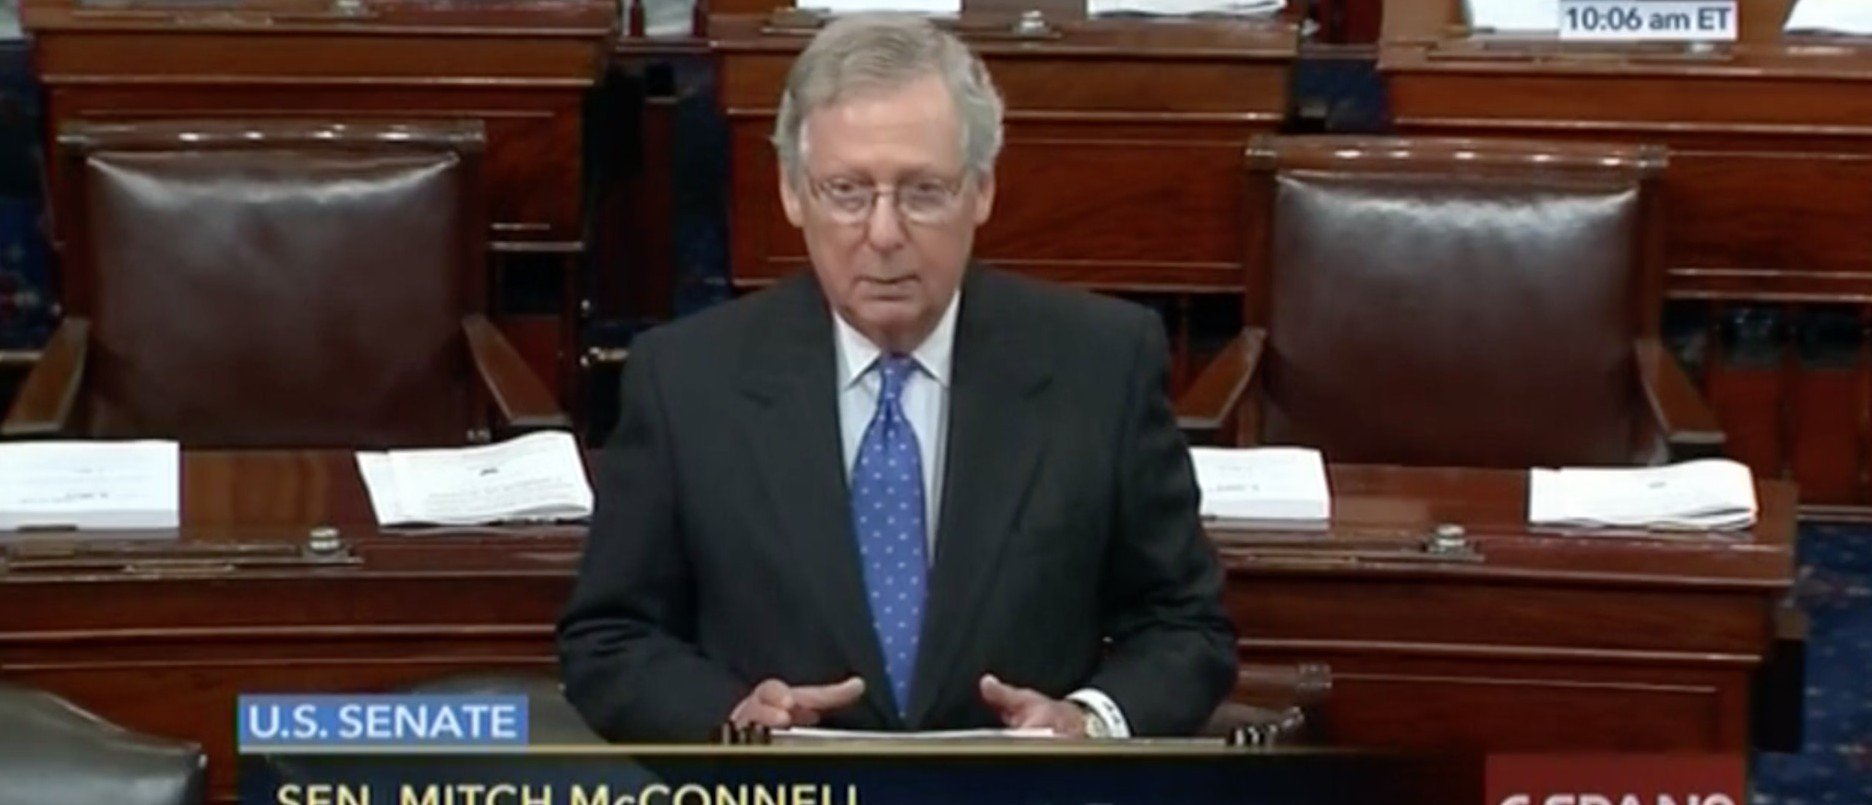 Sen. Mitch McConnell, Screen shot C-SPAN 2 2:23:2016